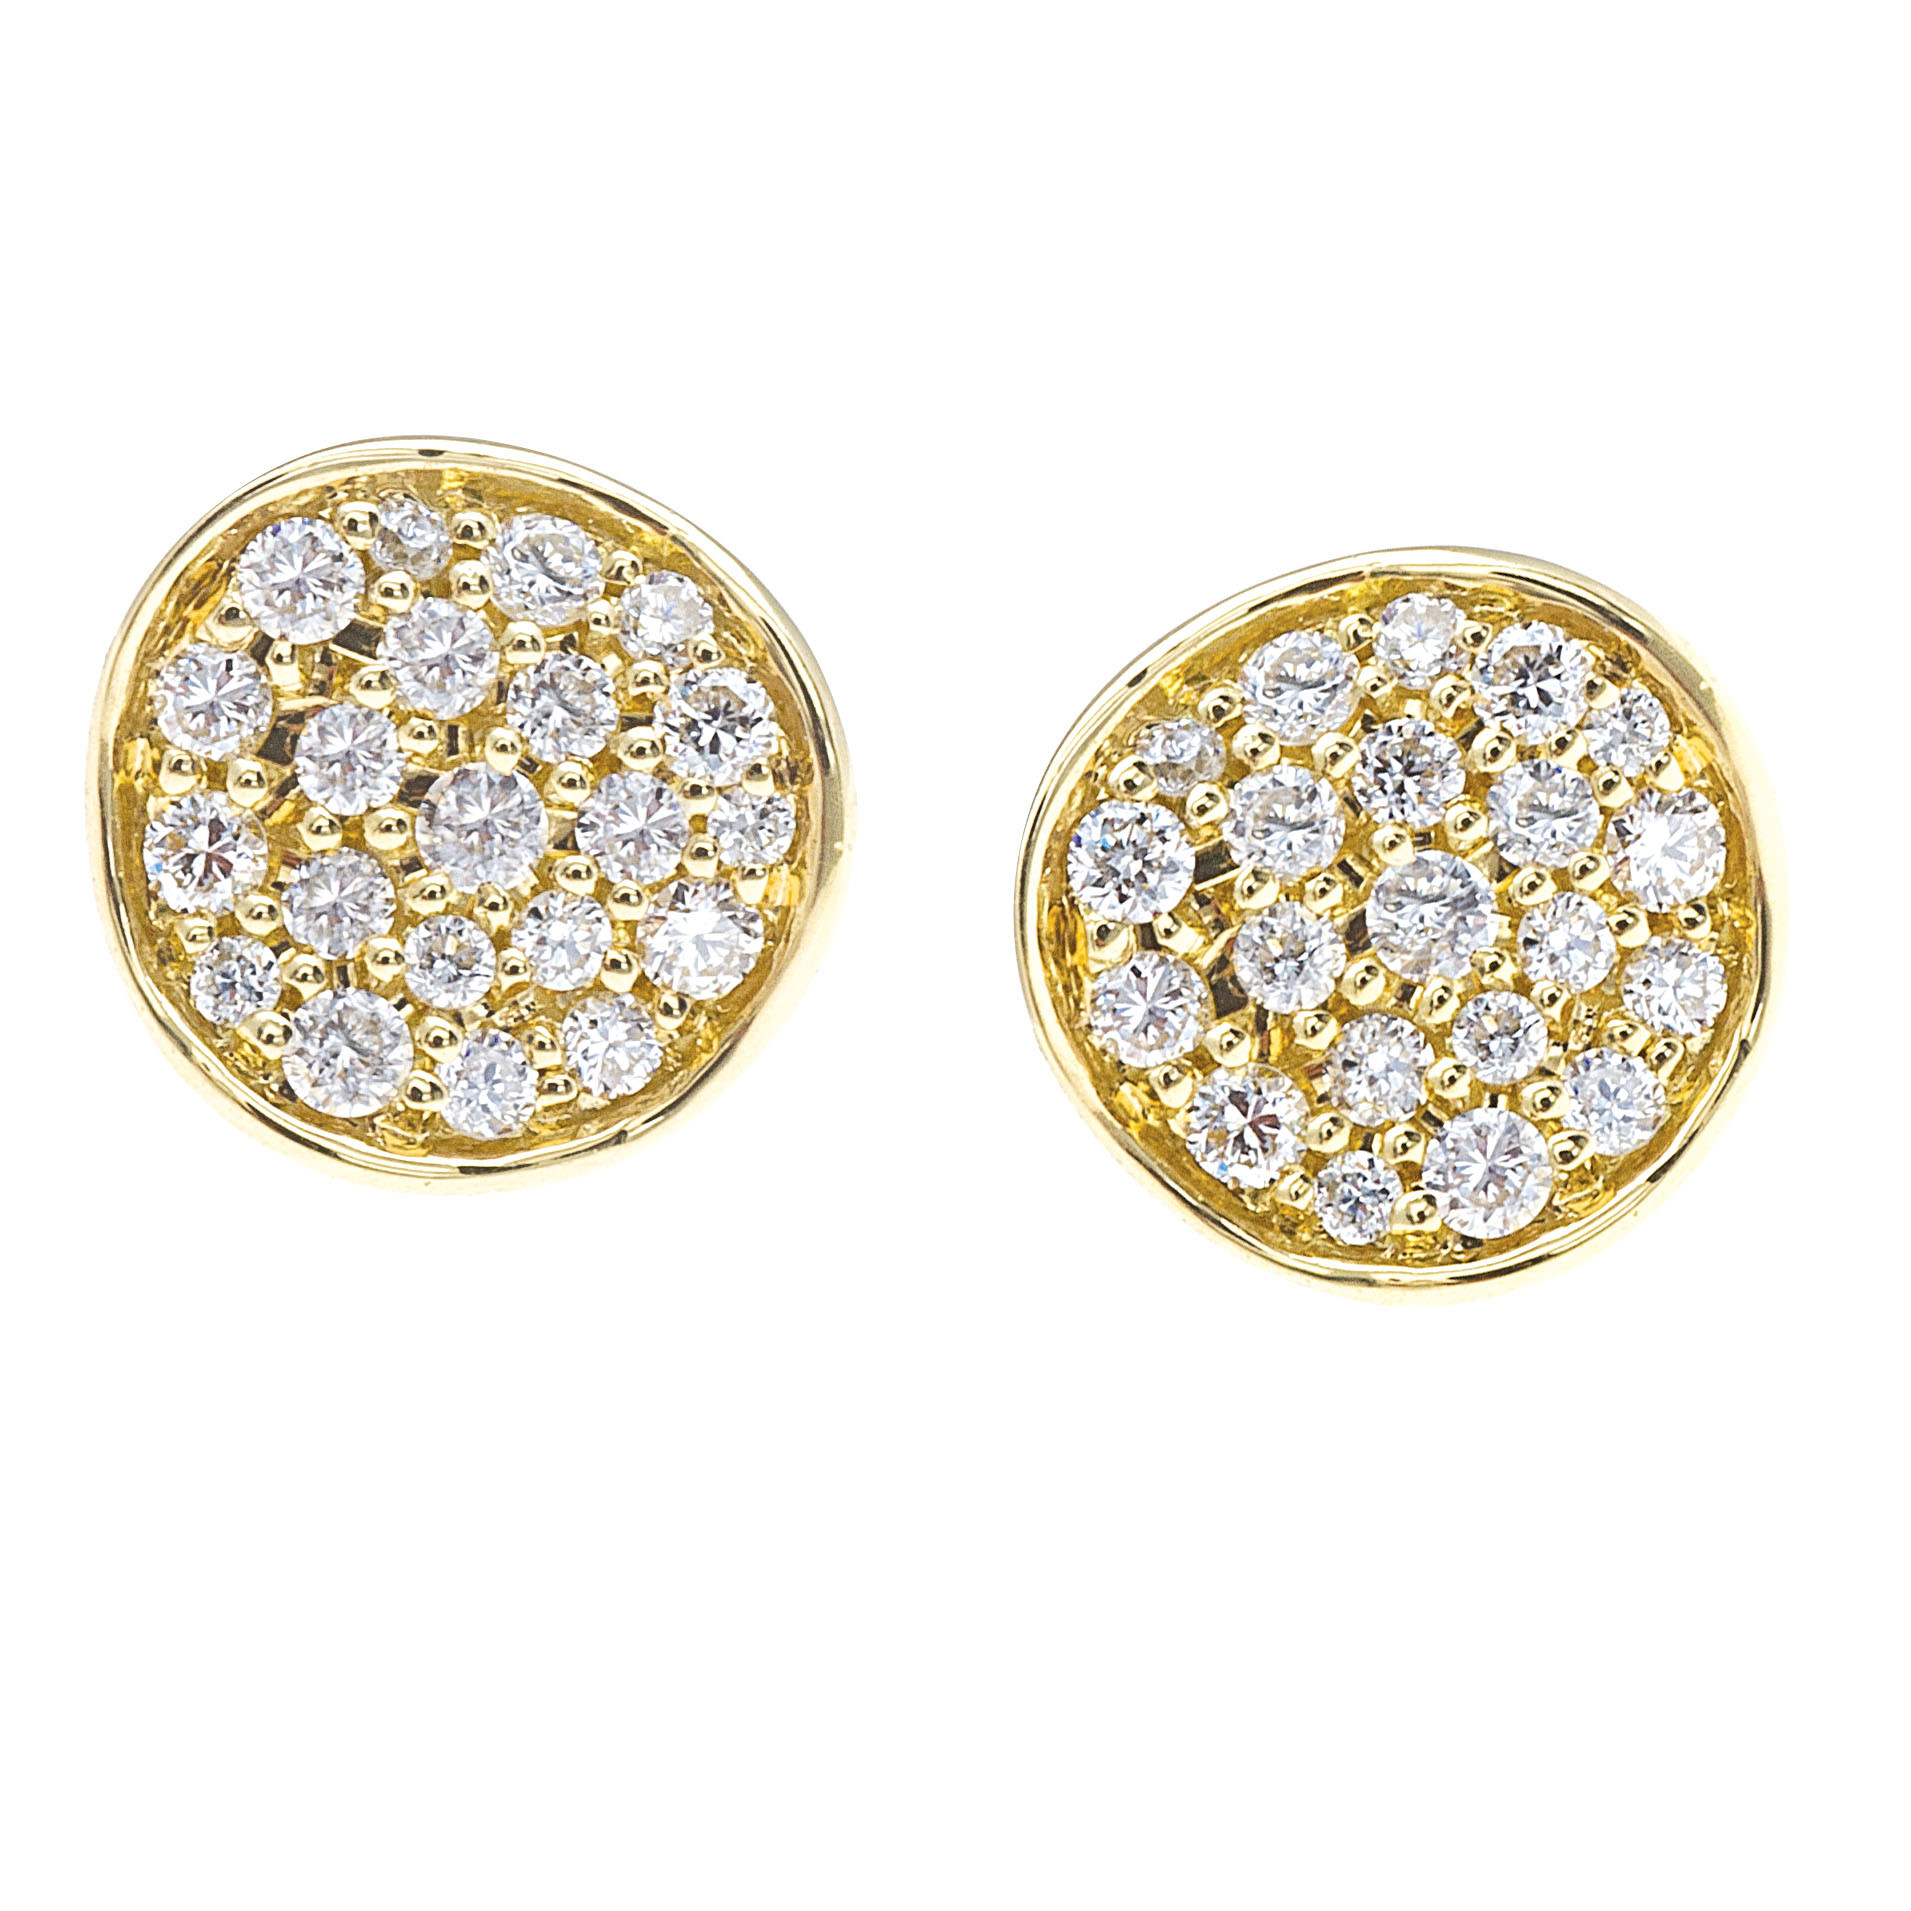 Ippolita Stardust Mini Diamond Stud Earrings 3JUIWgA